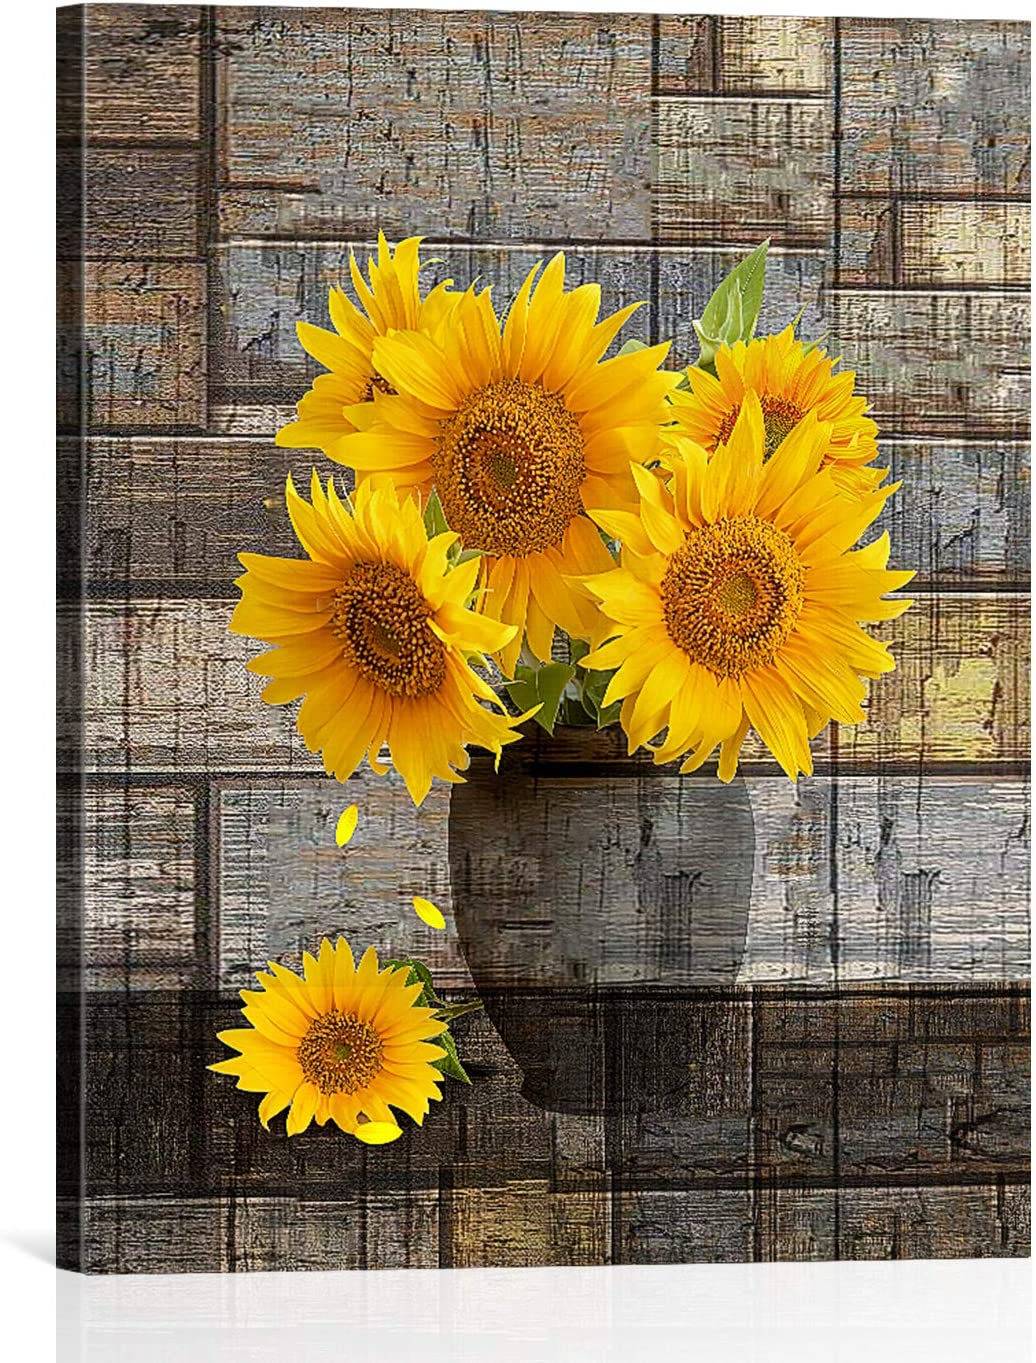 WISH TREE Sunflower Canvas Wall Art Vintage Farmhouse Sunflower Decor for  Home Bathroom Living Room Ready To Hang12x 12 inch